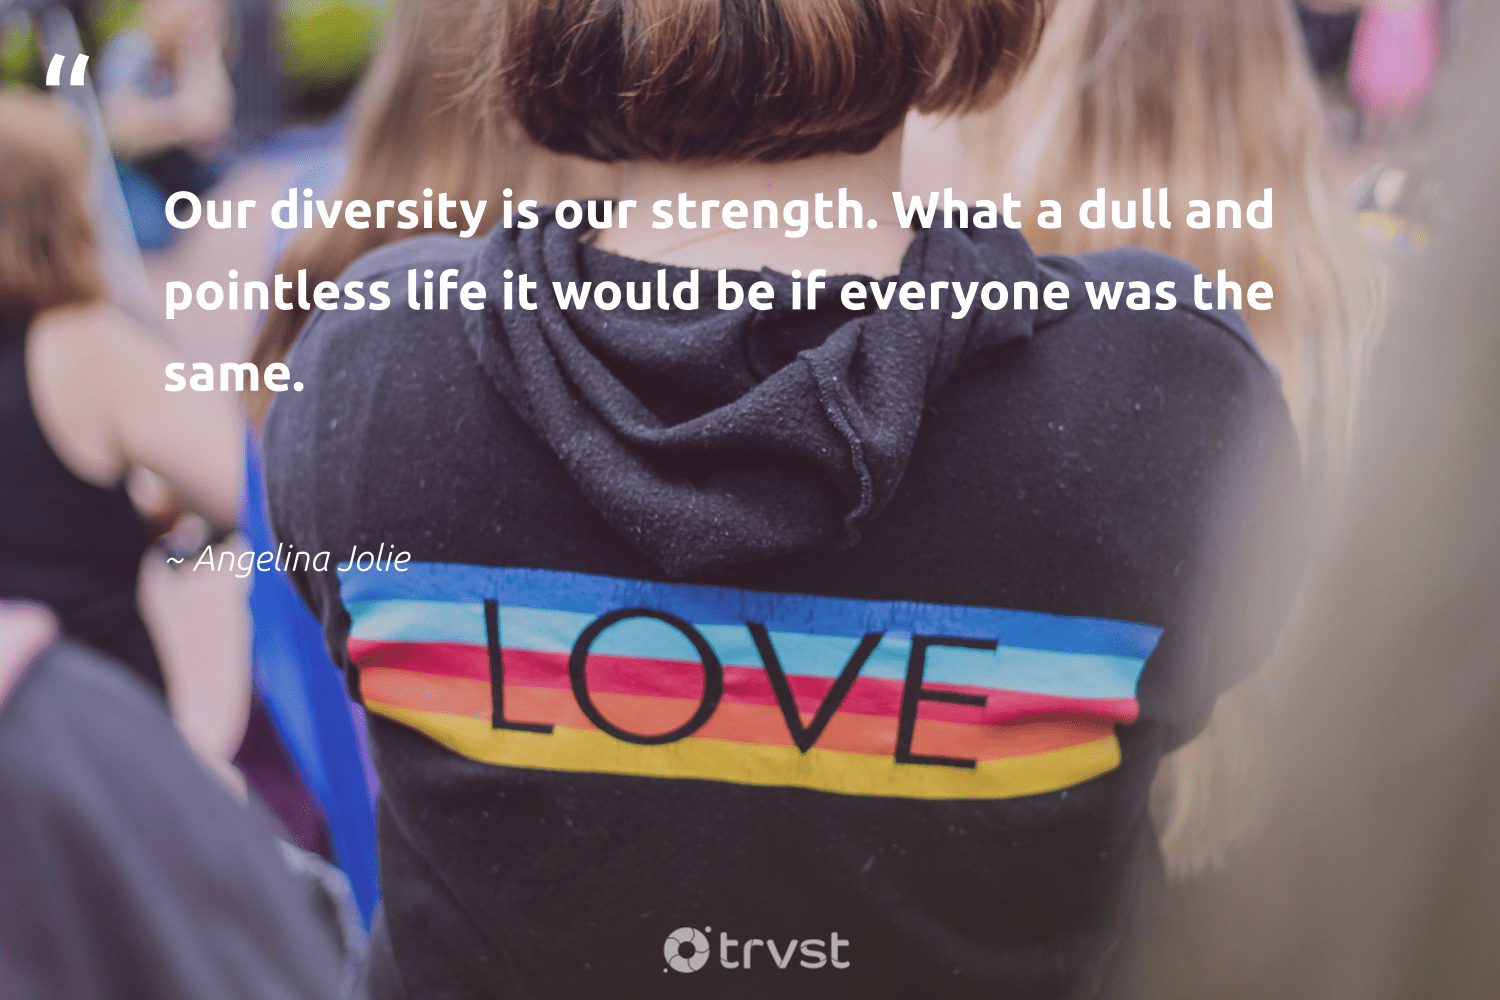 """Our diversity is our strength. What a dull and pointless life it would be if everyone was the same.""  - Angelina Jolie #trvst #quotes #diversity #representationmatters #discrimination #socialchange #bethechange #beinspired #inclusion #makeadifference #socialgood #thinkgreen"